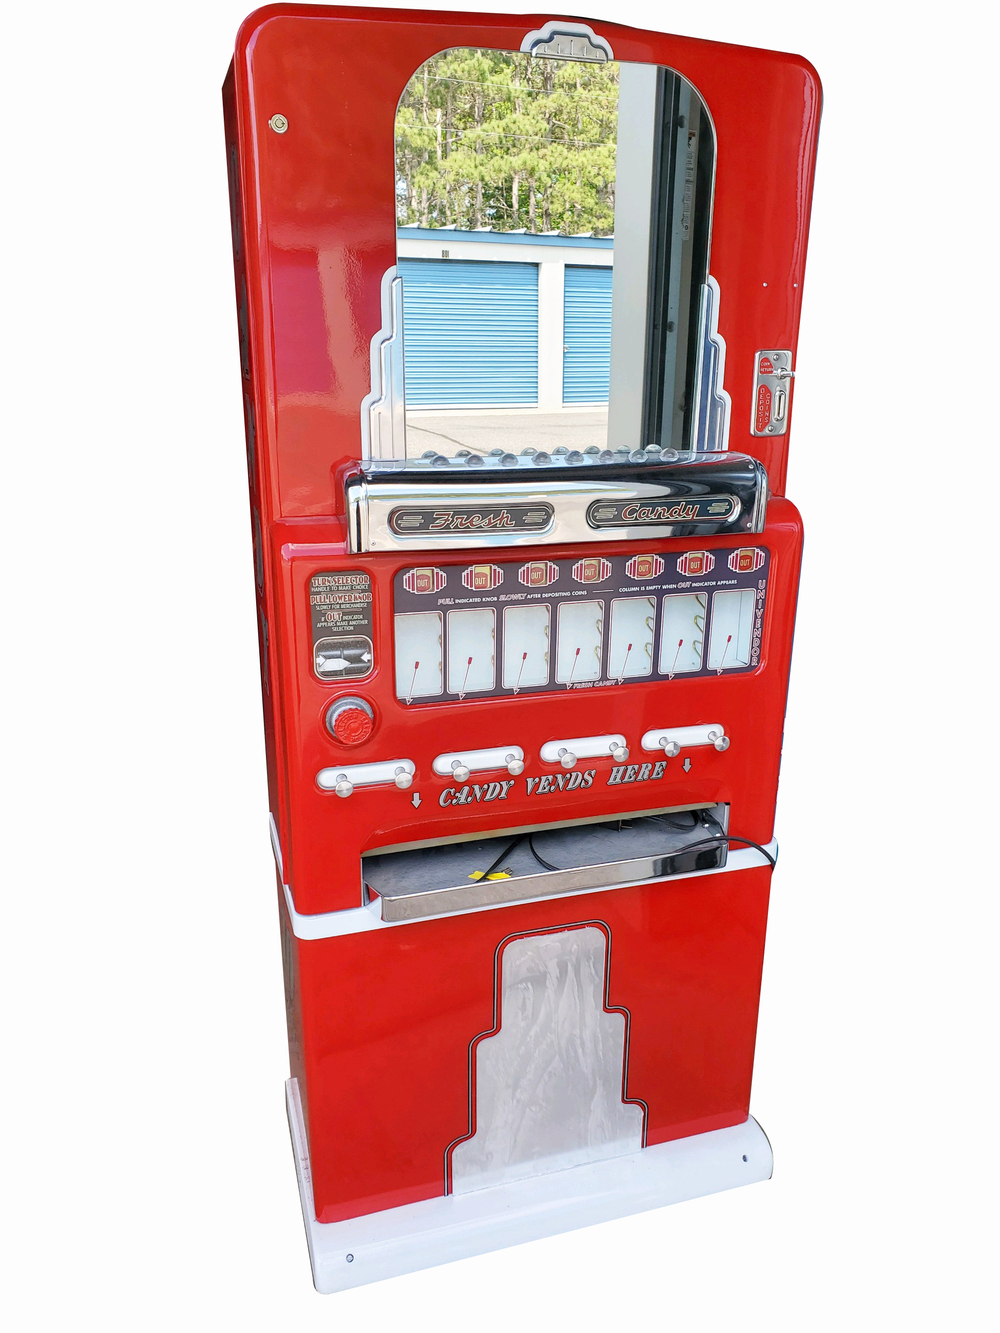 1930S-40S STONER COIN-OPERATED CANDY MACHINE